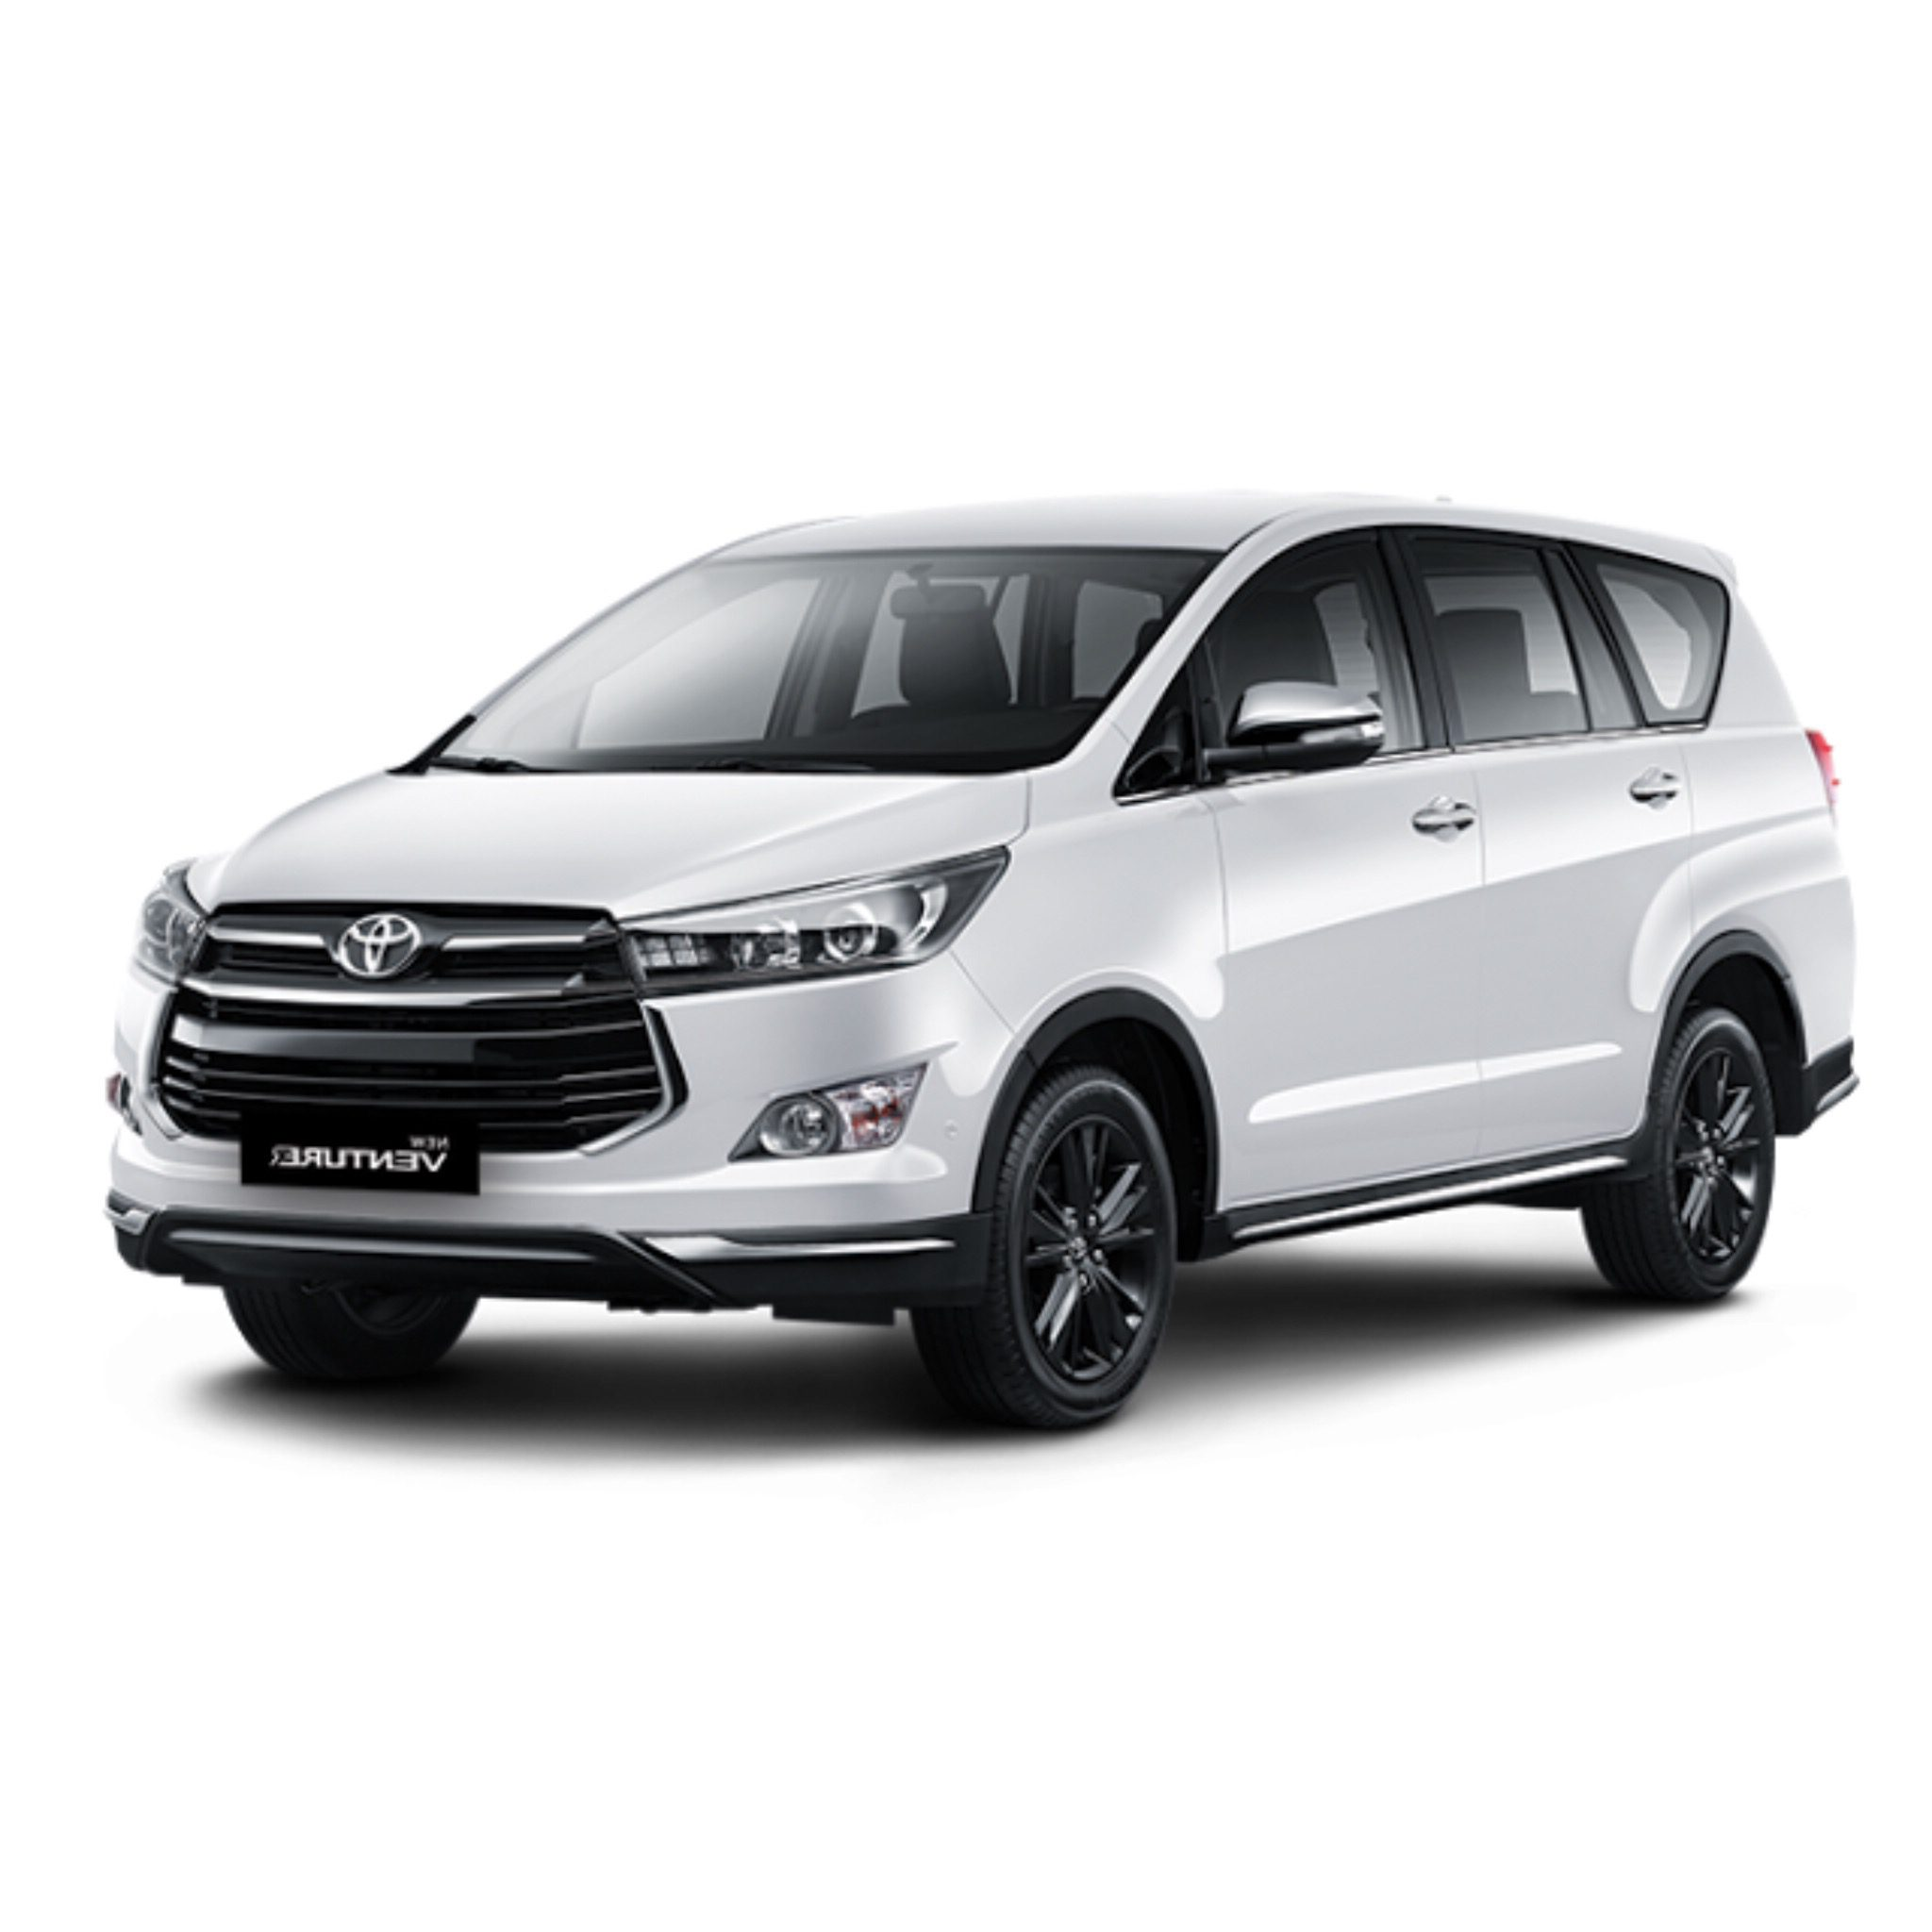 toyota all new innova venturer yaris 2017 trd parts kijang jogja dealer resmi nasmoco